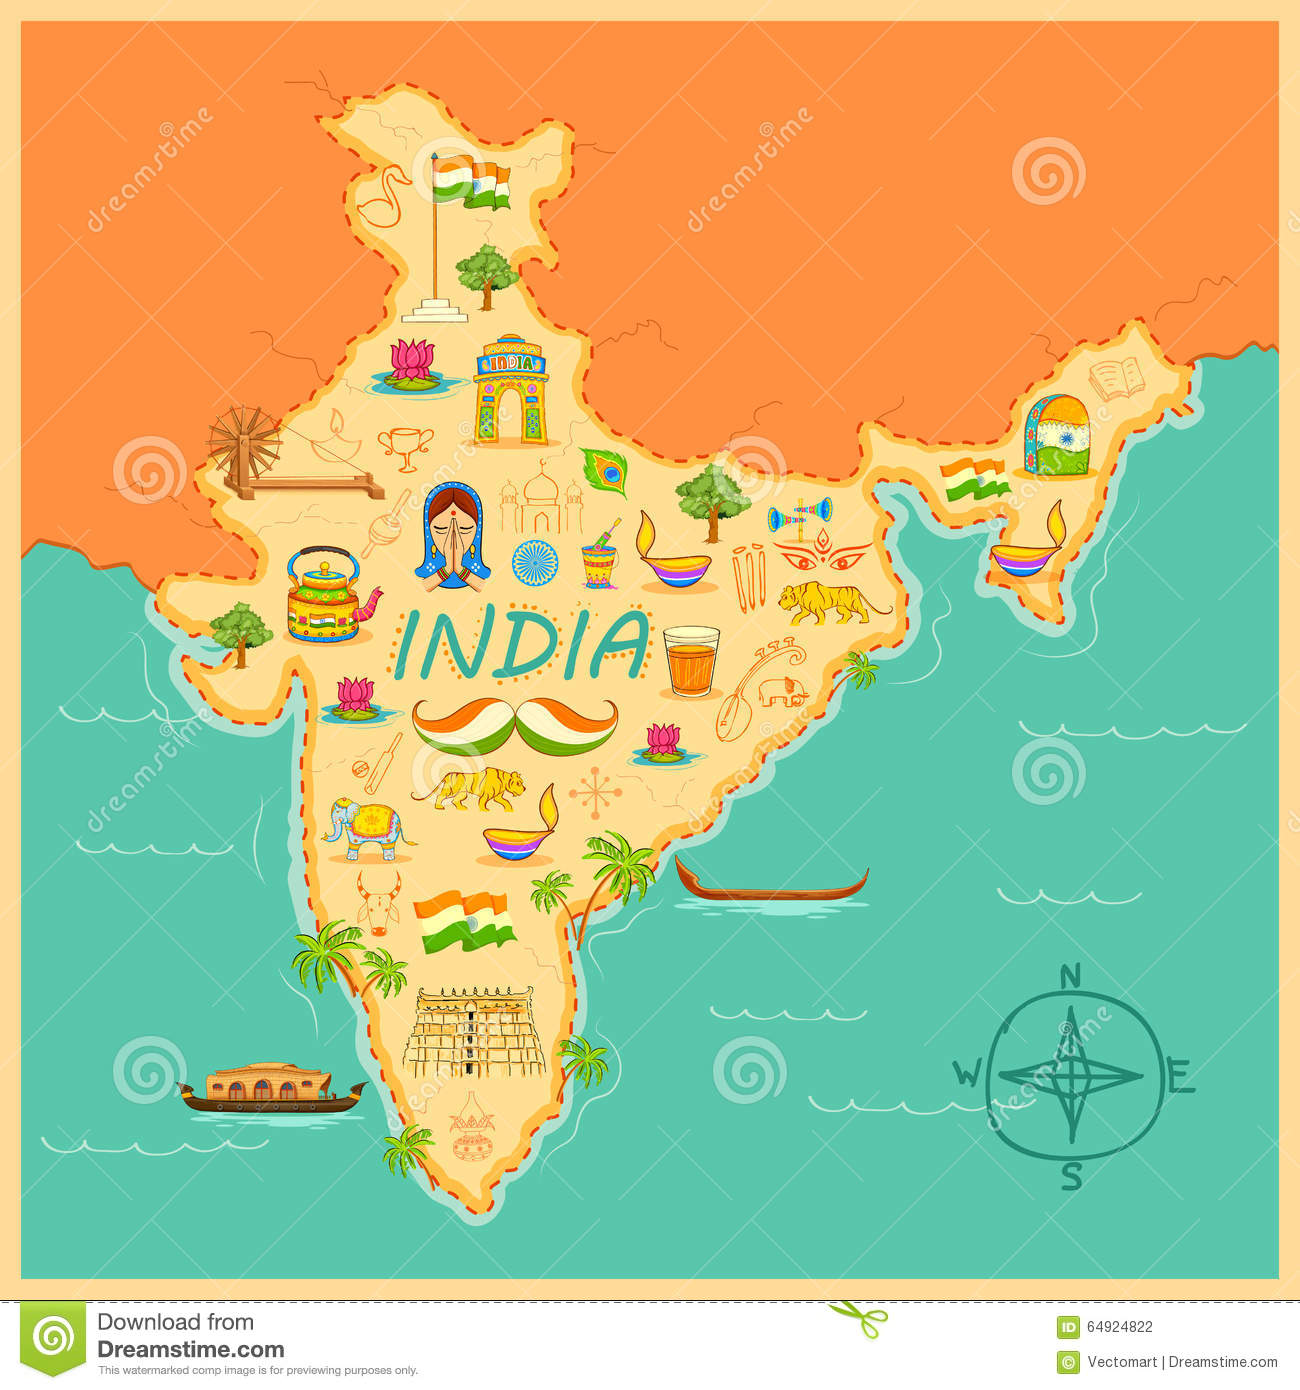 Map Of India Stock Vector. Illustration Of National